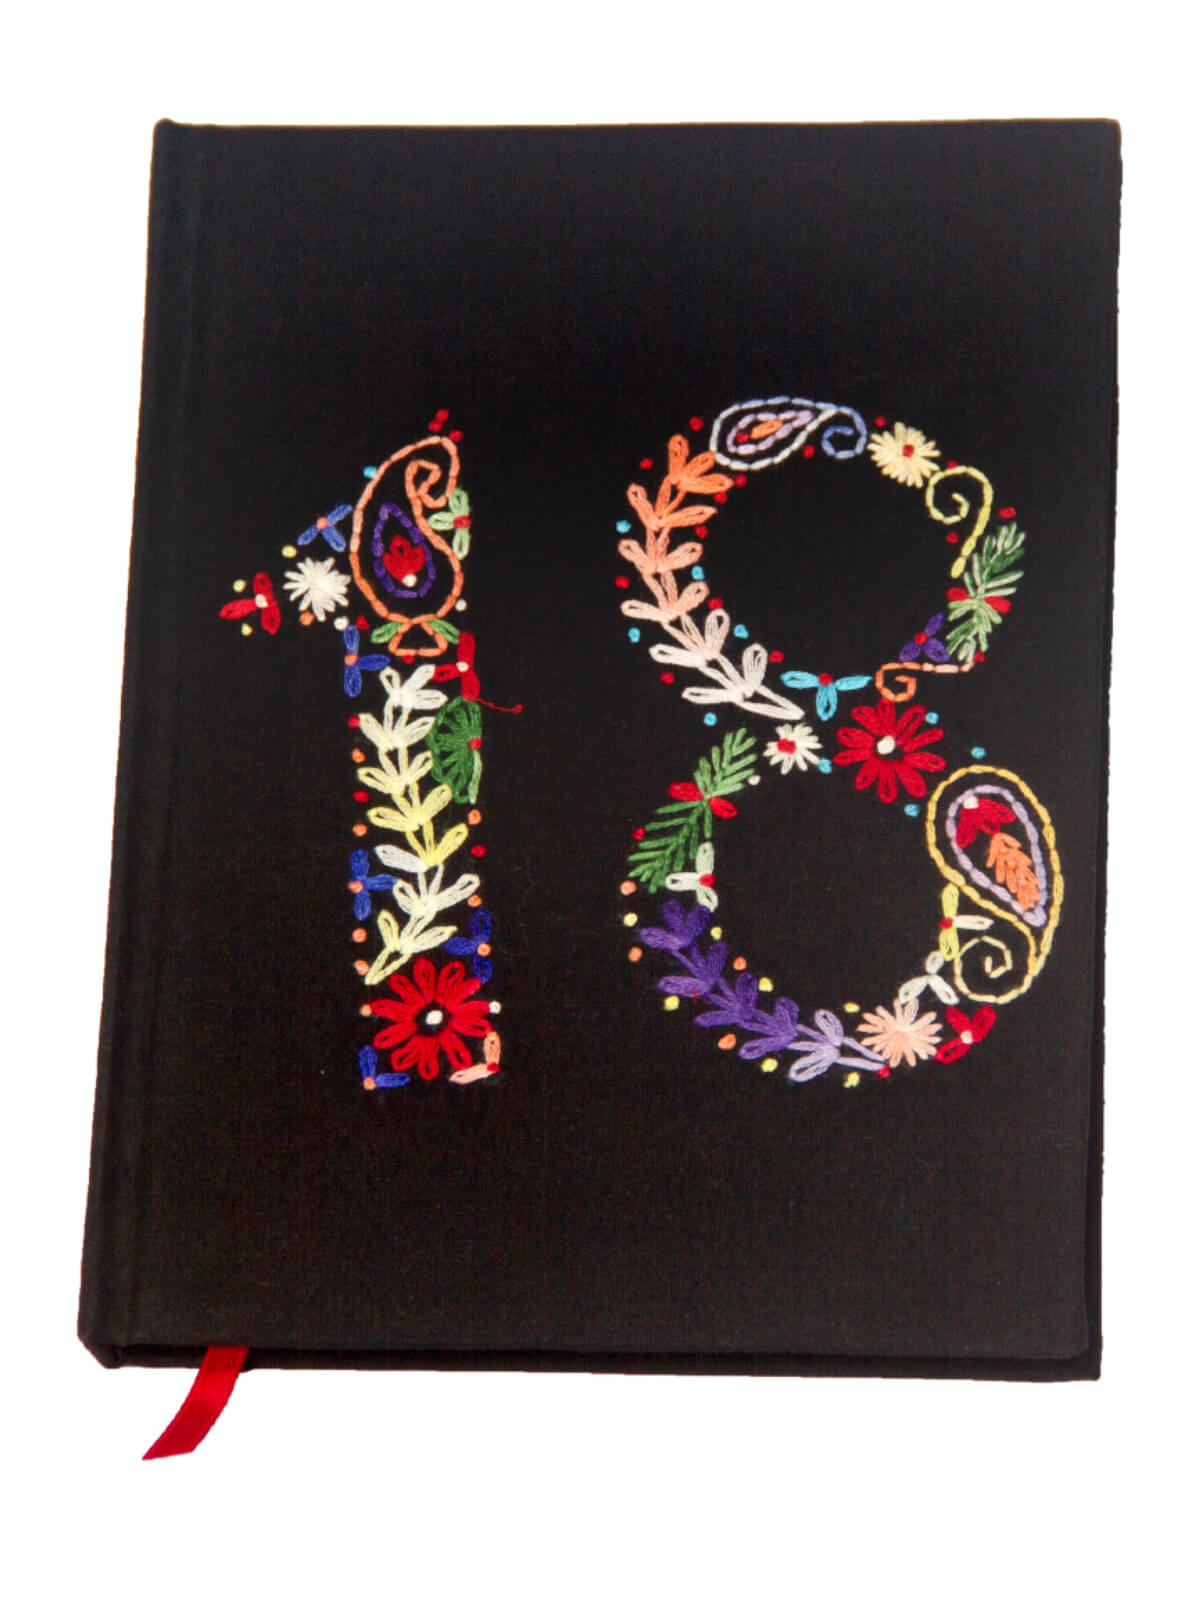 Black Hand Stitched Notebook